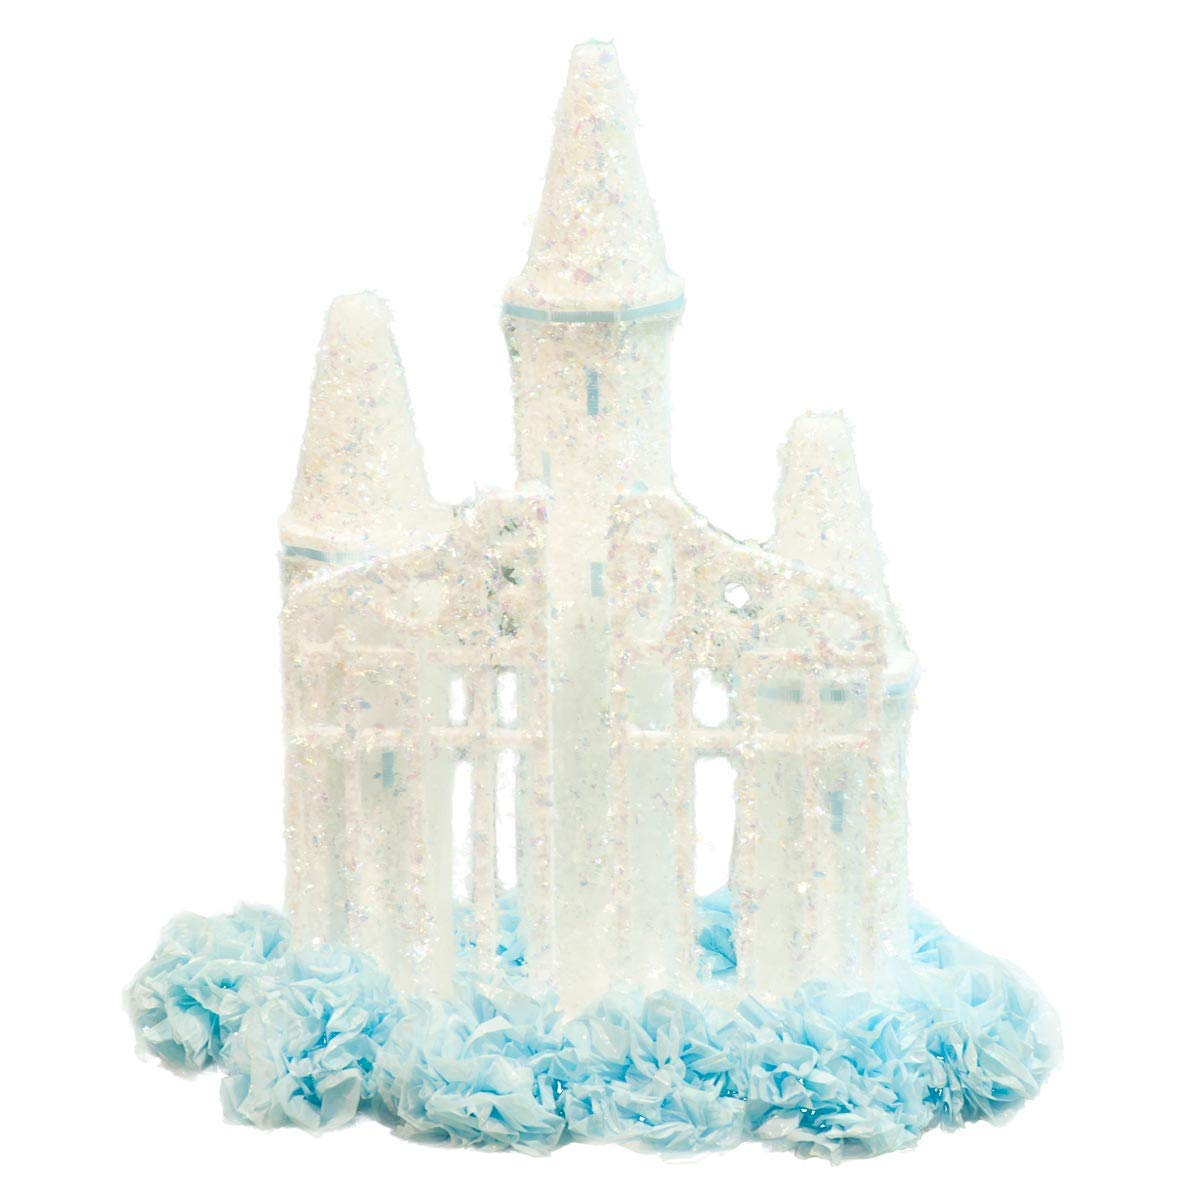 Paradise Palace Centerpiece Kit, 18 Inch High x 15 Inches Wide, Fairy Tale Theme Centerpieces, Set of 4